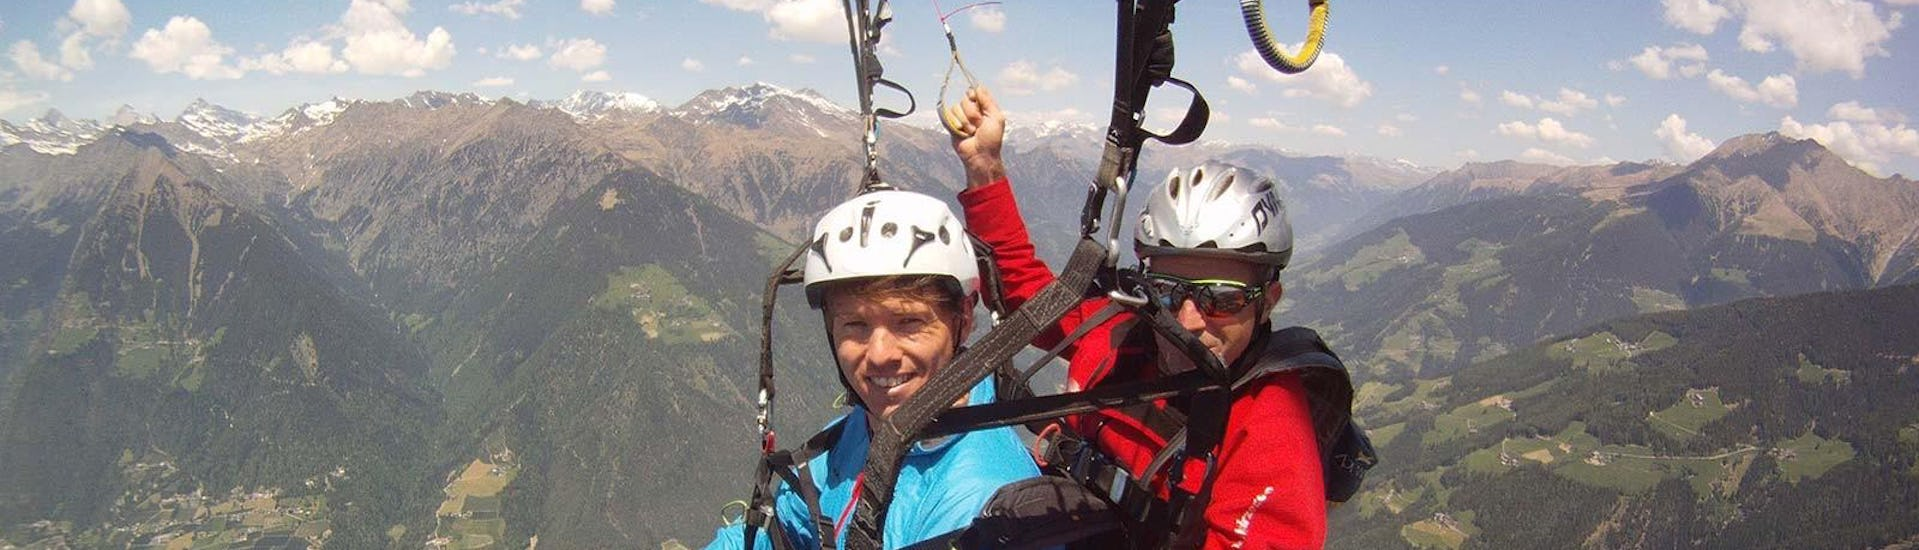 tandem-paragliding-at-punta-cervinia-summit-flight-flyhirzer-hero